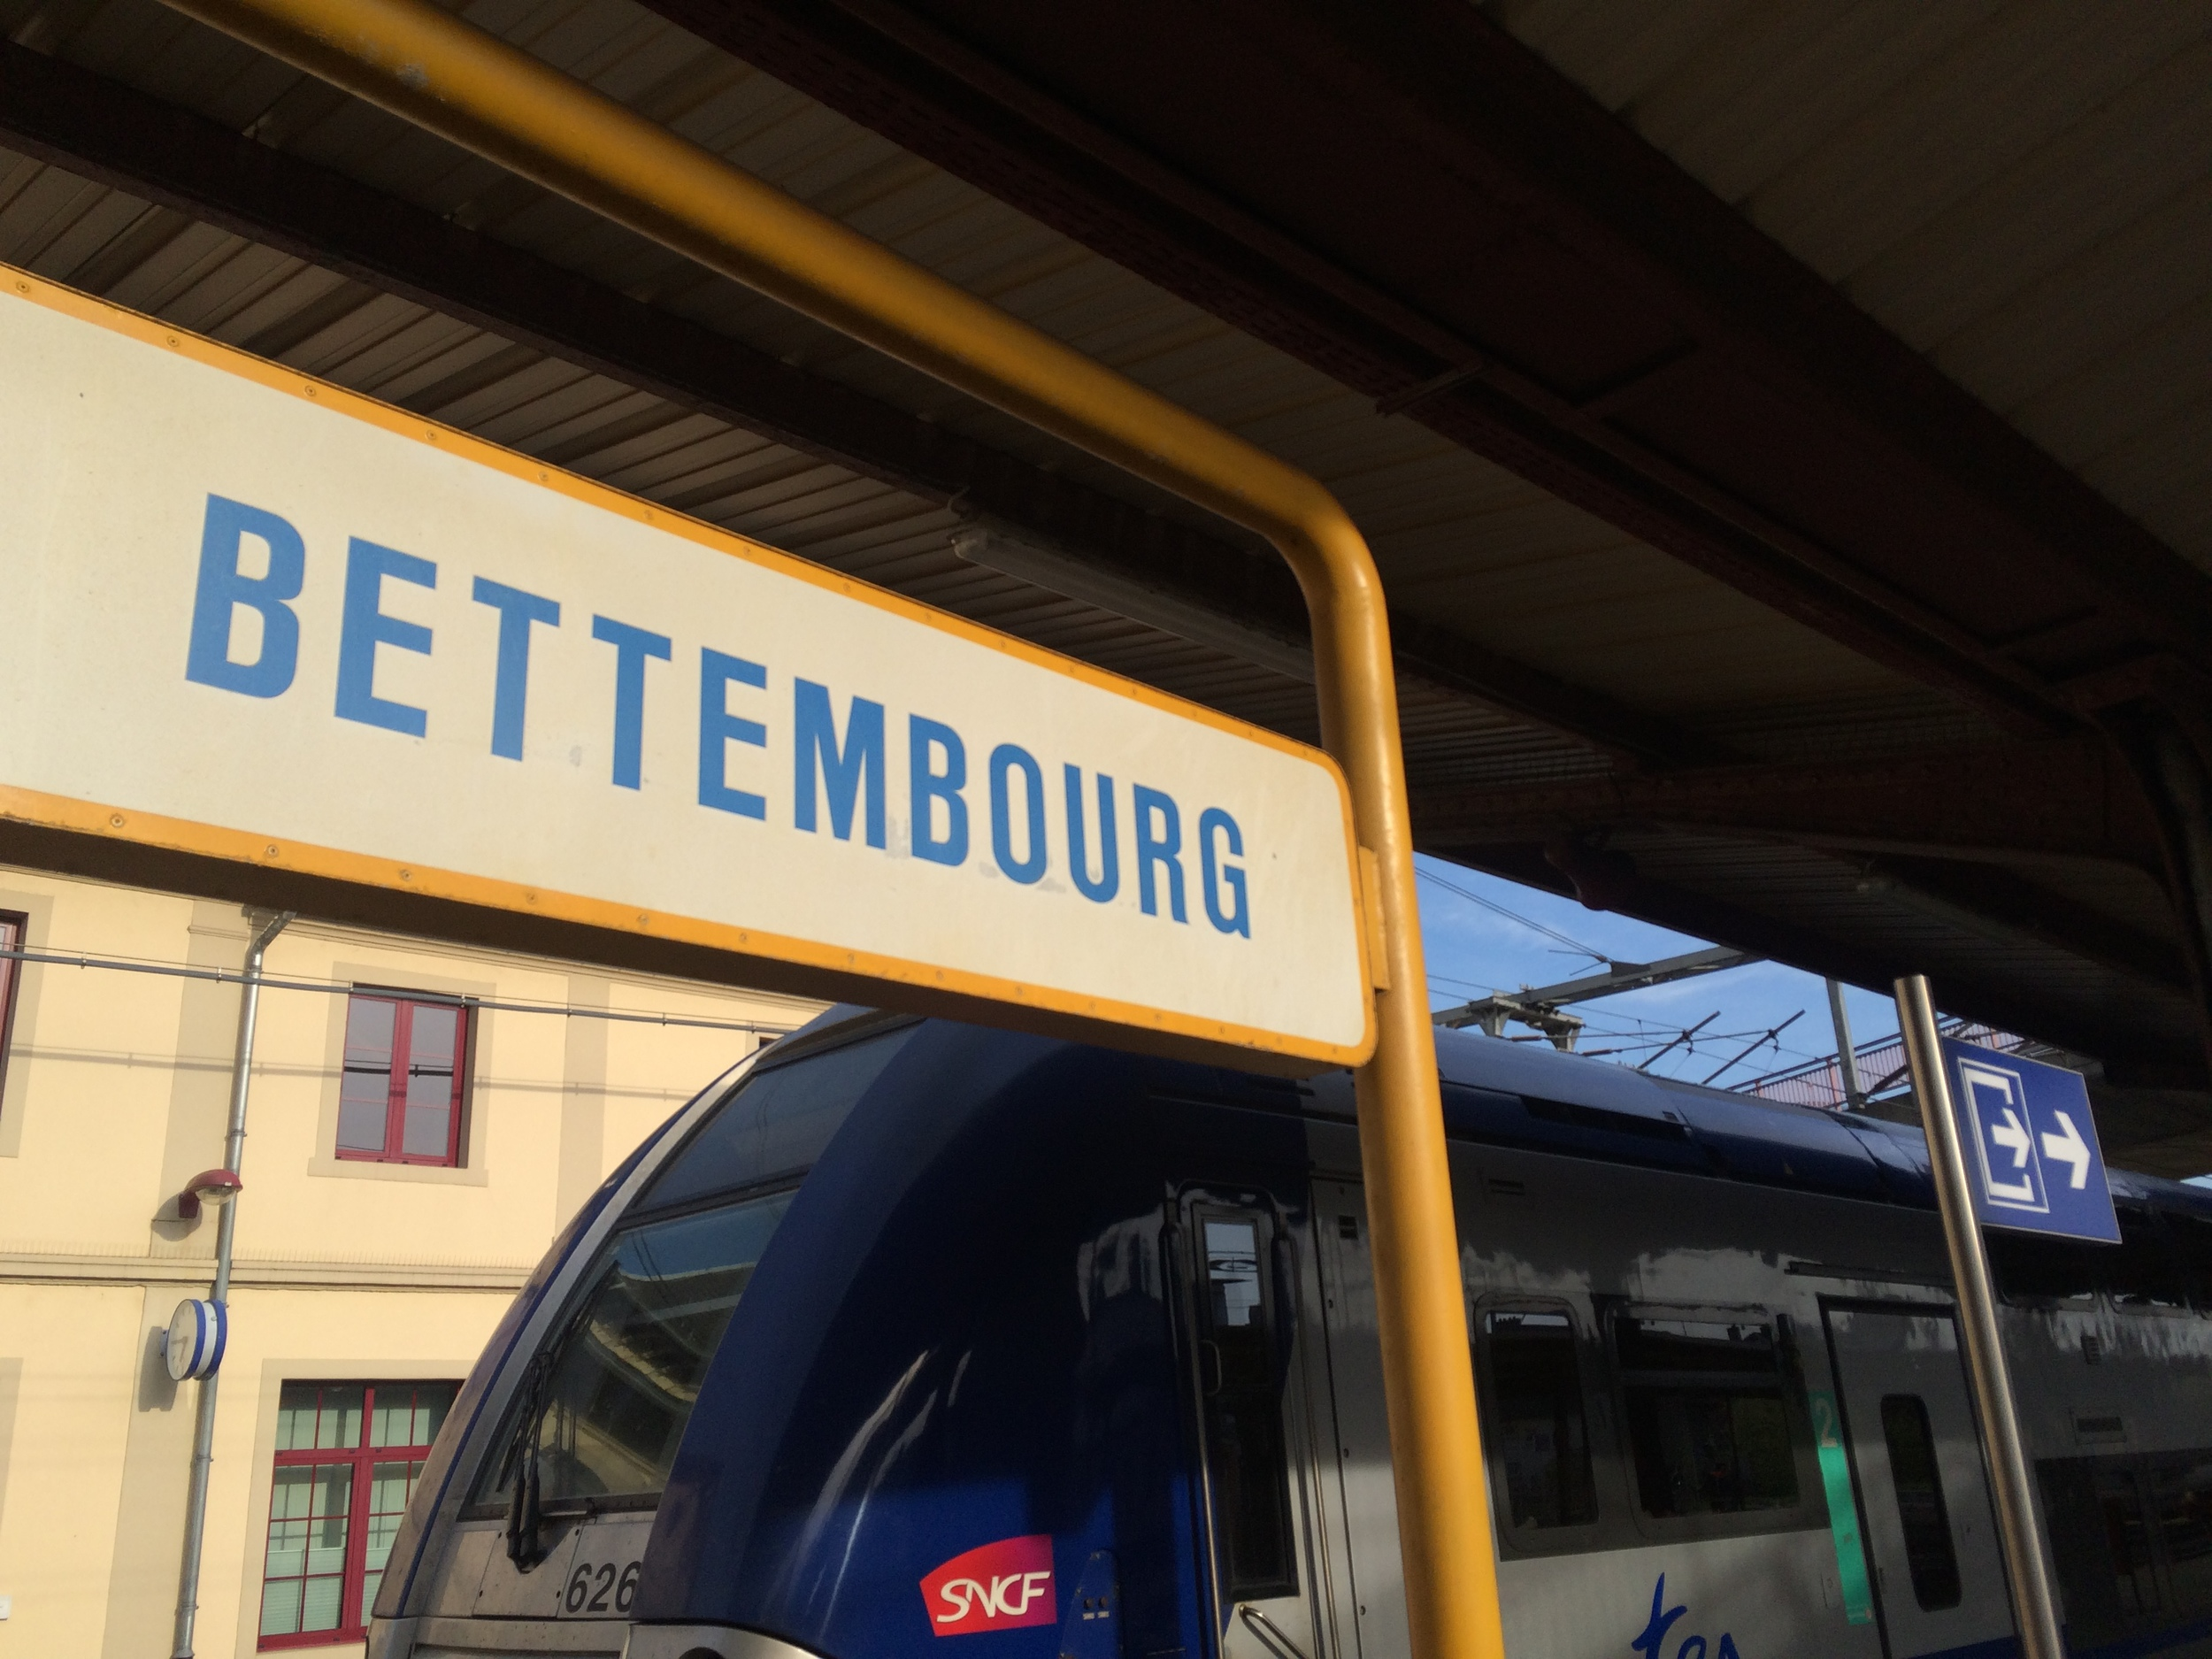 Arrival at Bettembourg train station.